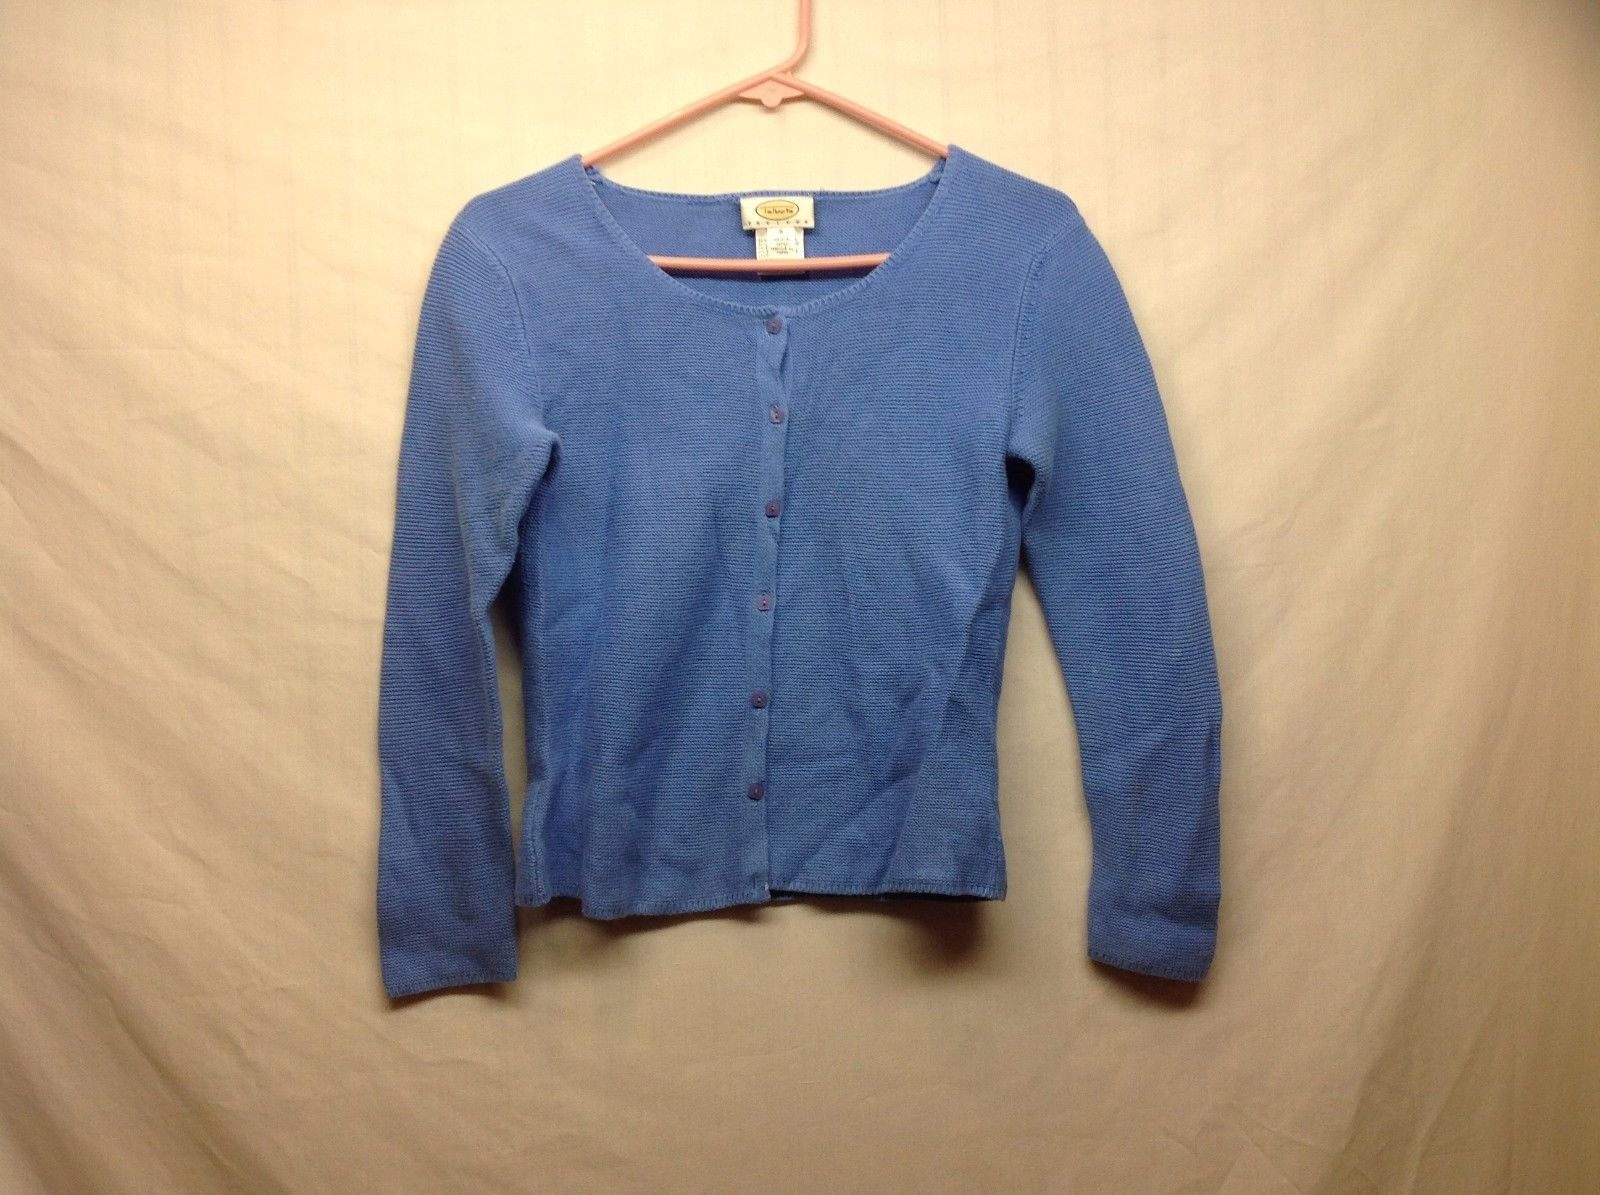 Ladies Blue Cardigan Sweater by Talbots Sz PS